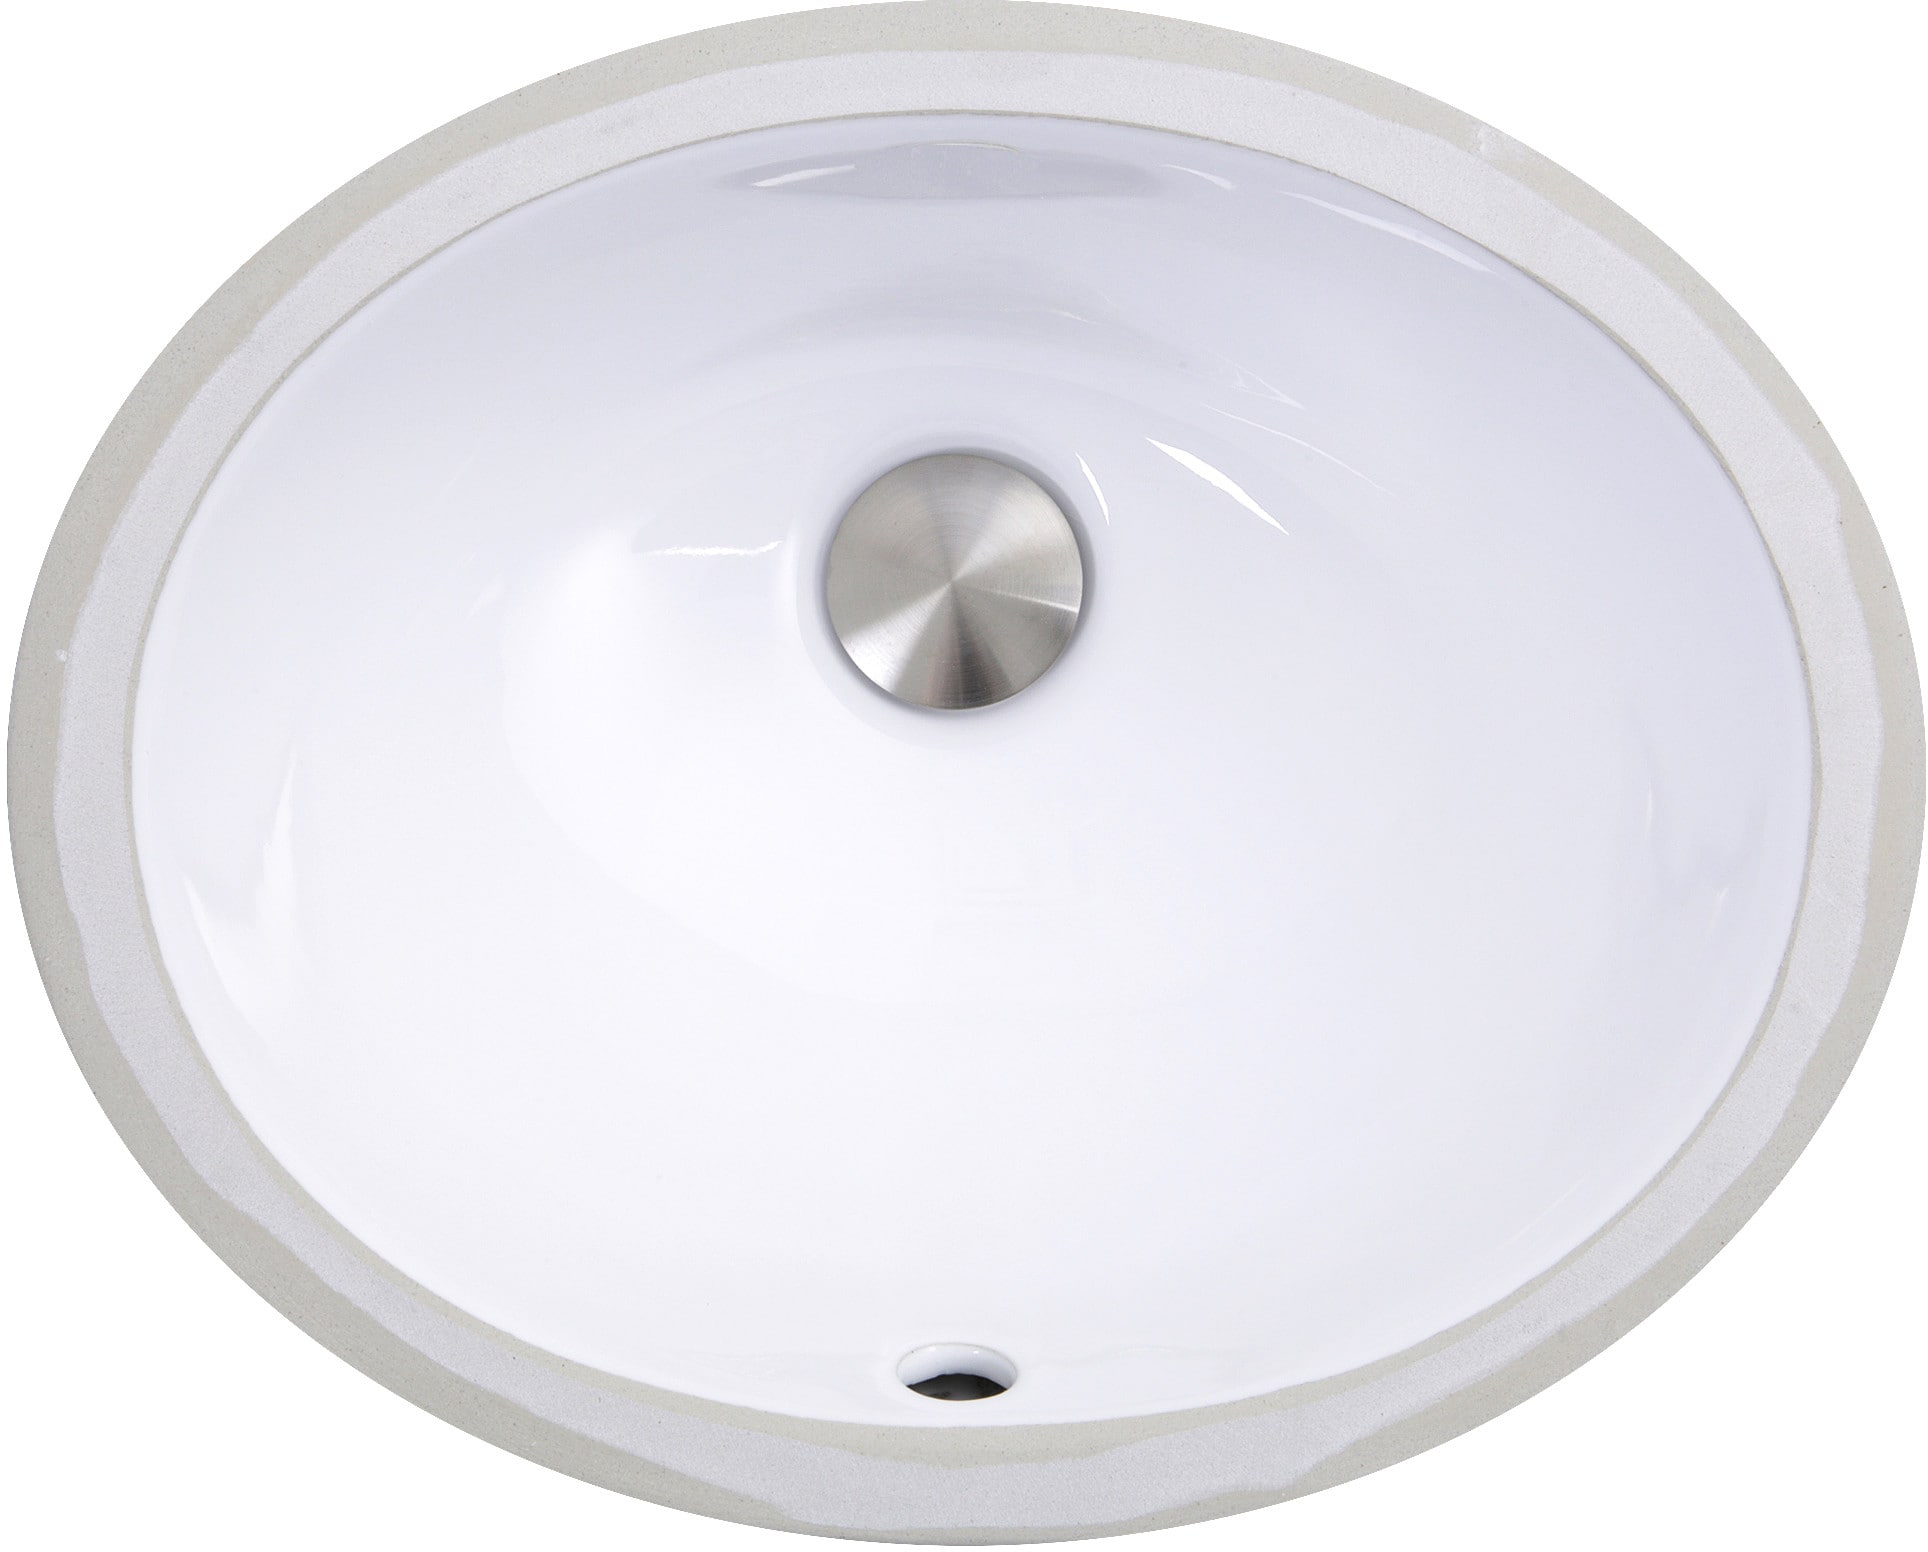 Nantucket Sinks UM13X10W 15 Inch Undermount Bathroom Sink ...